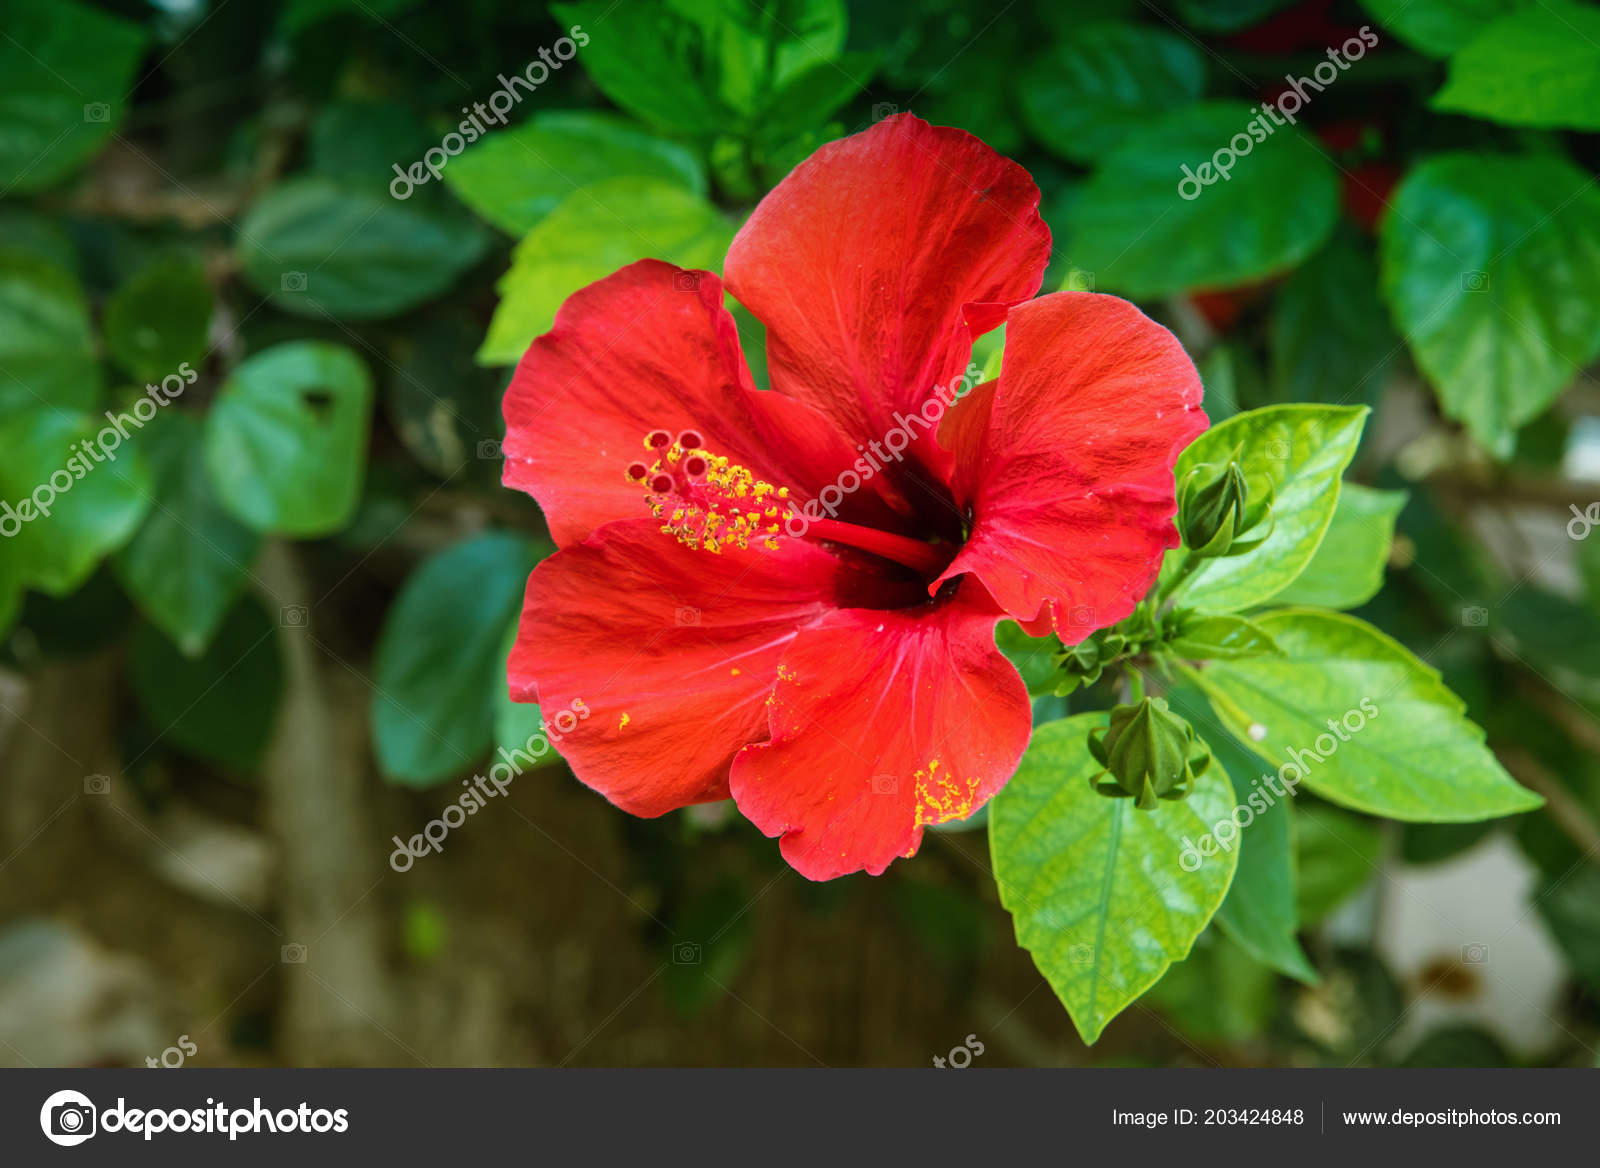 Red Hibiscus Flower Garden Water Drops Detail Stamen Pistil Green Stock Photo C Kuzenkova 203424848